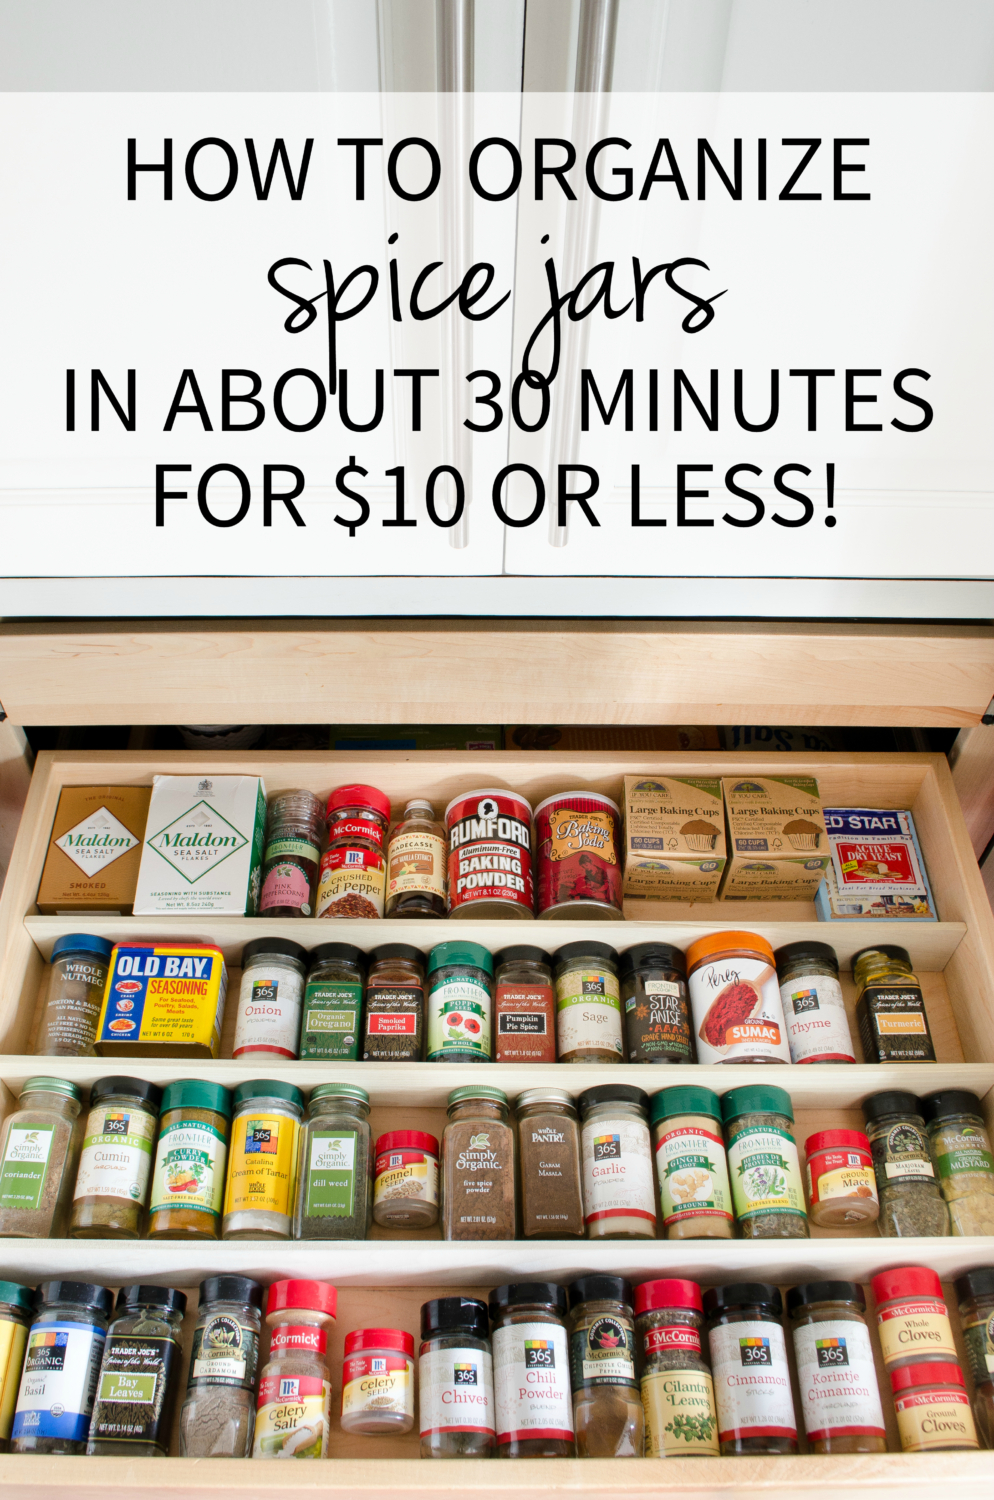 How to organize spice jars in 30 minutes for $10 or less! The best way to organize your spice jars and make cooking easier!